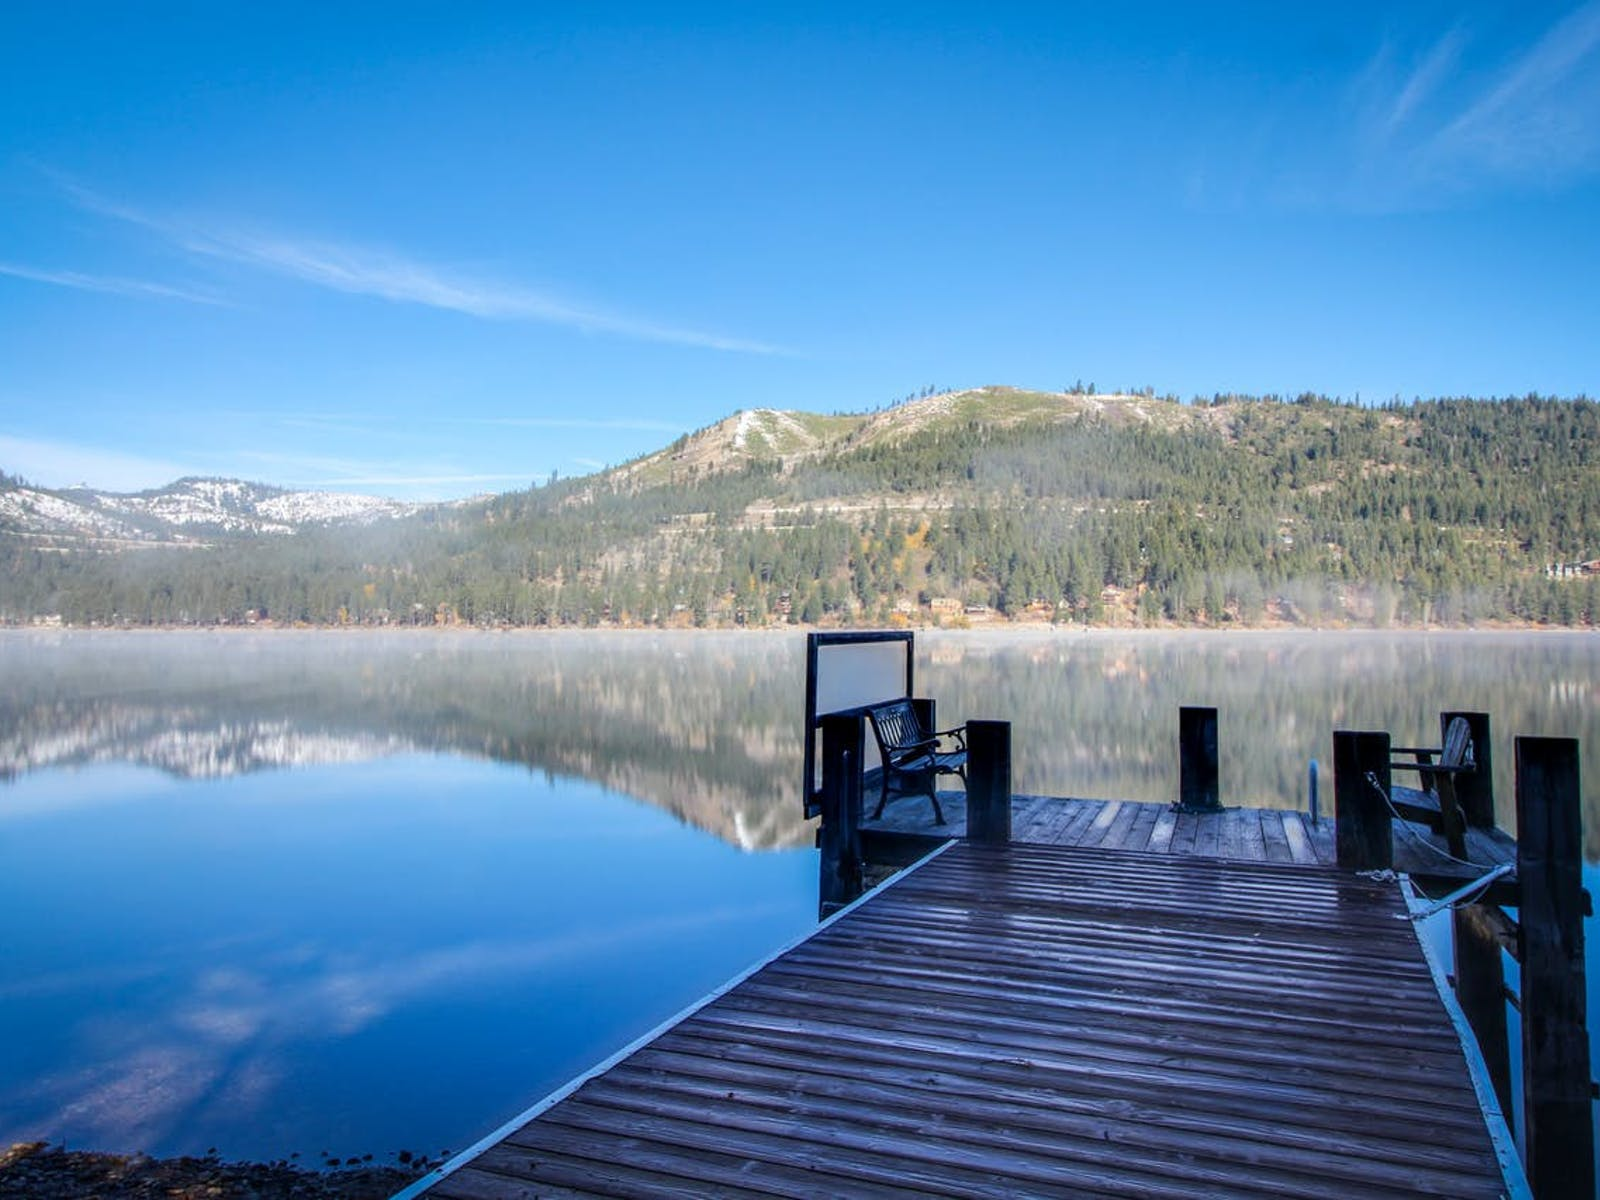 dock with benches over Donner Lake